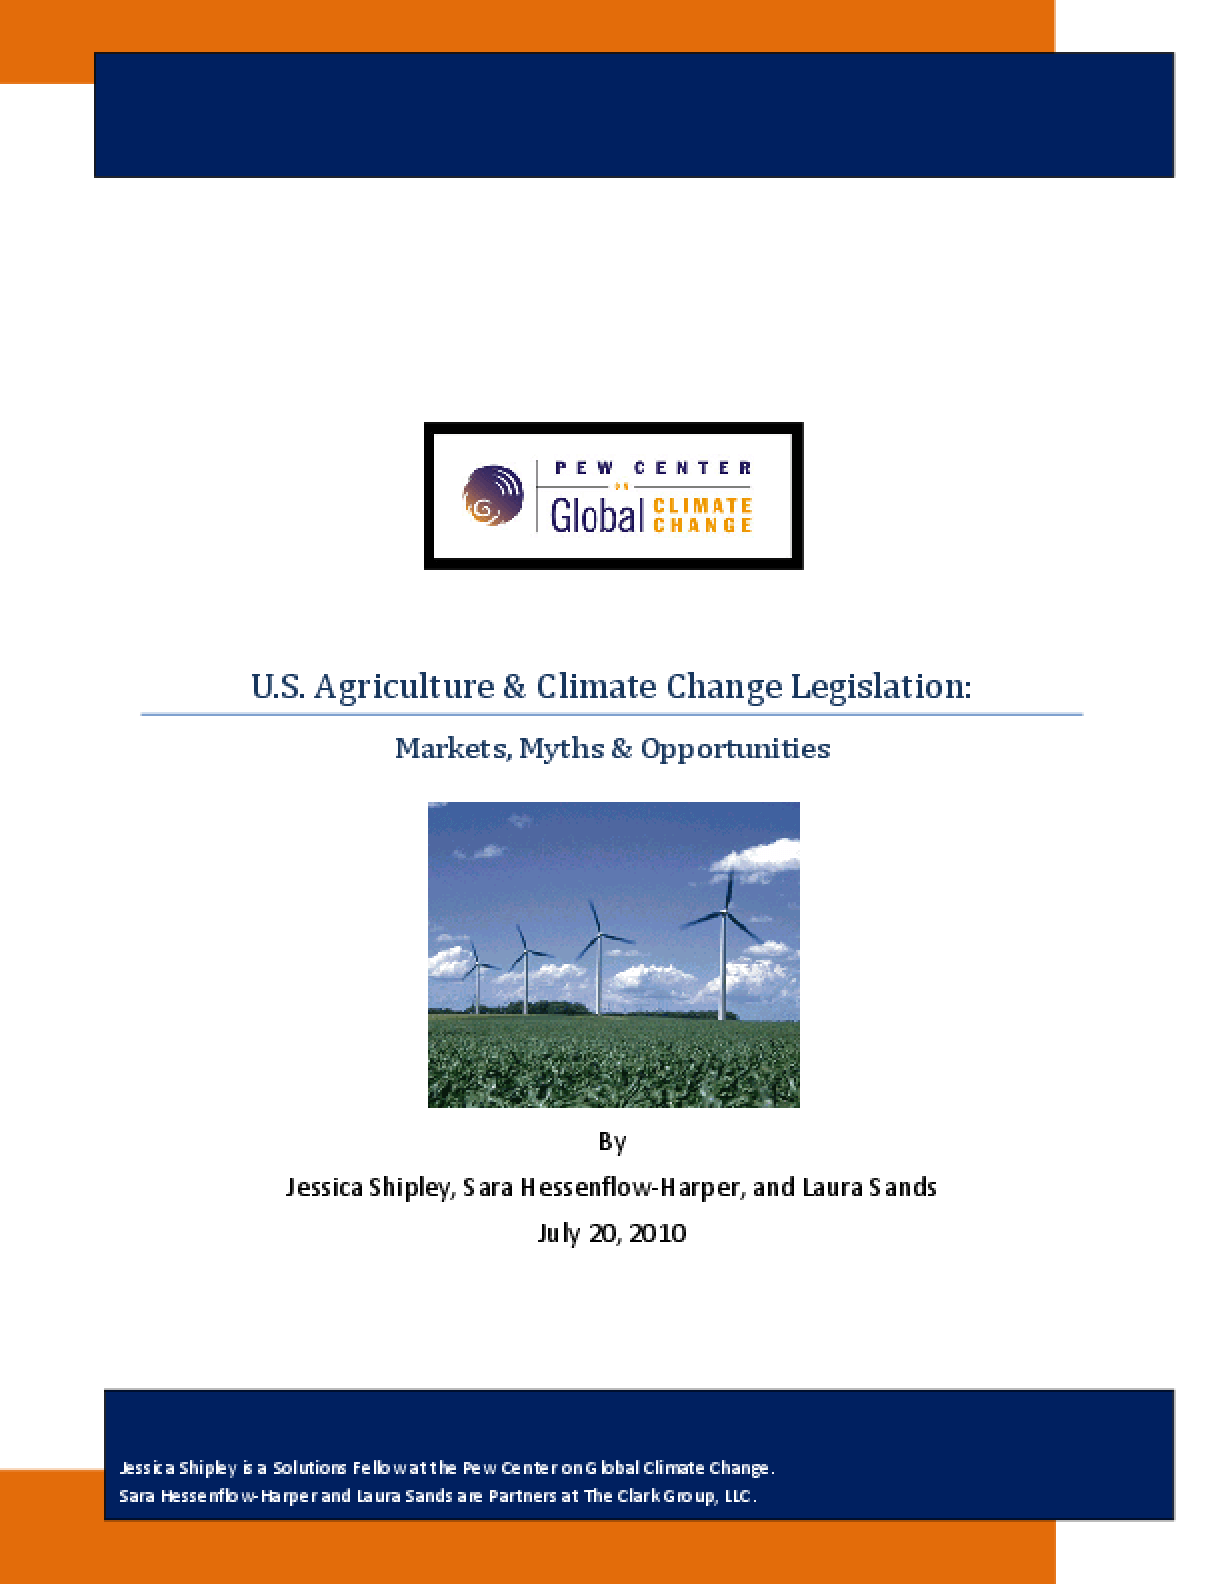 U.S. Agriculture & Climate Change Legislation: Markets, Myths & Opportunities